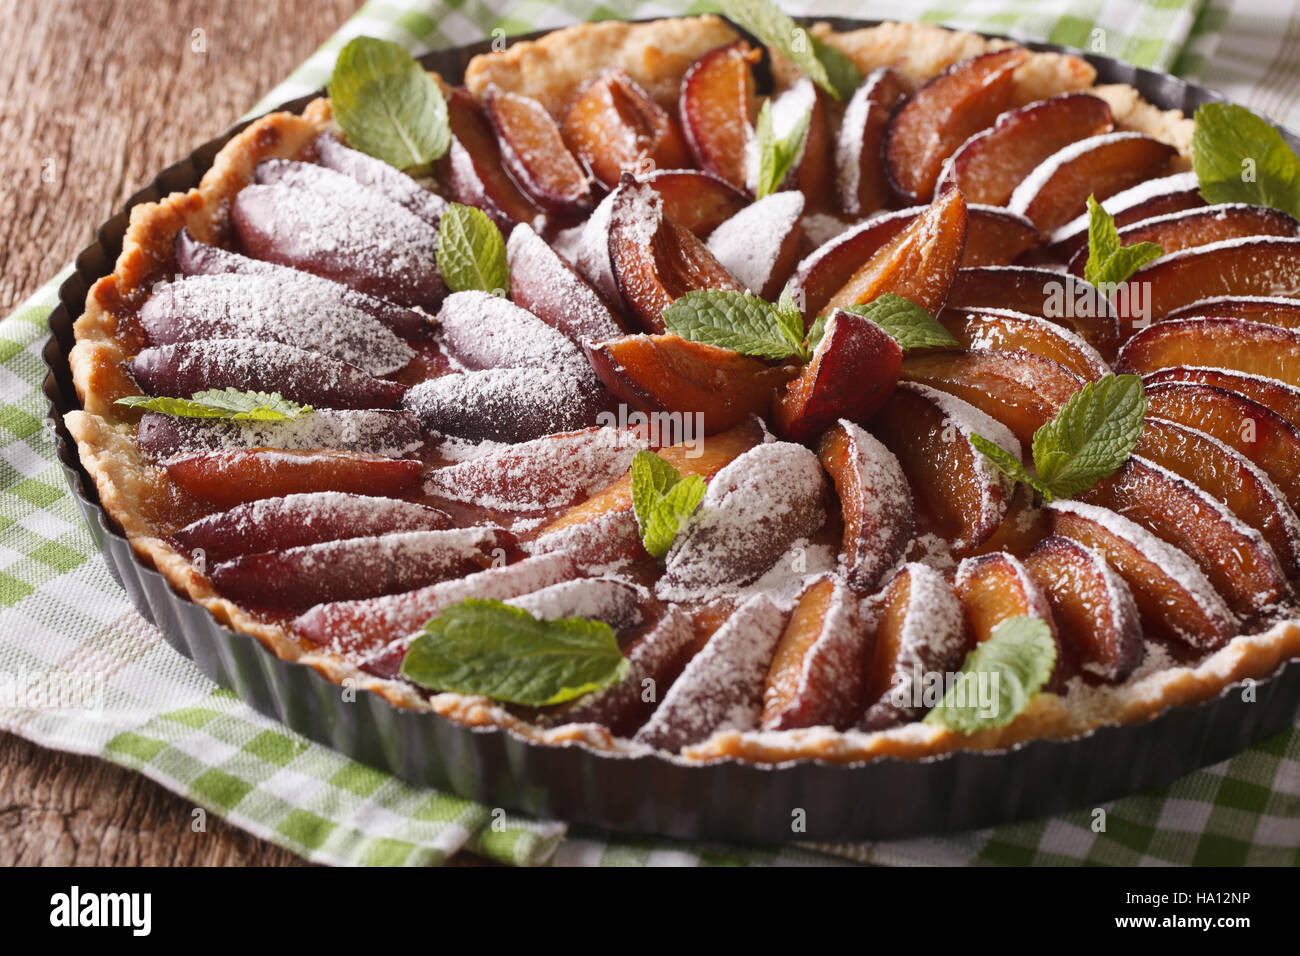 Delicious pastry: plum tart with mint and powdered sugar close-up on the table. horizontal - Stock Image